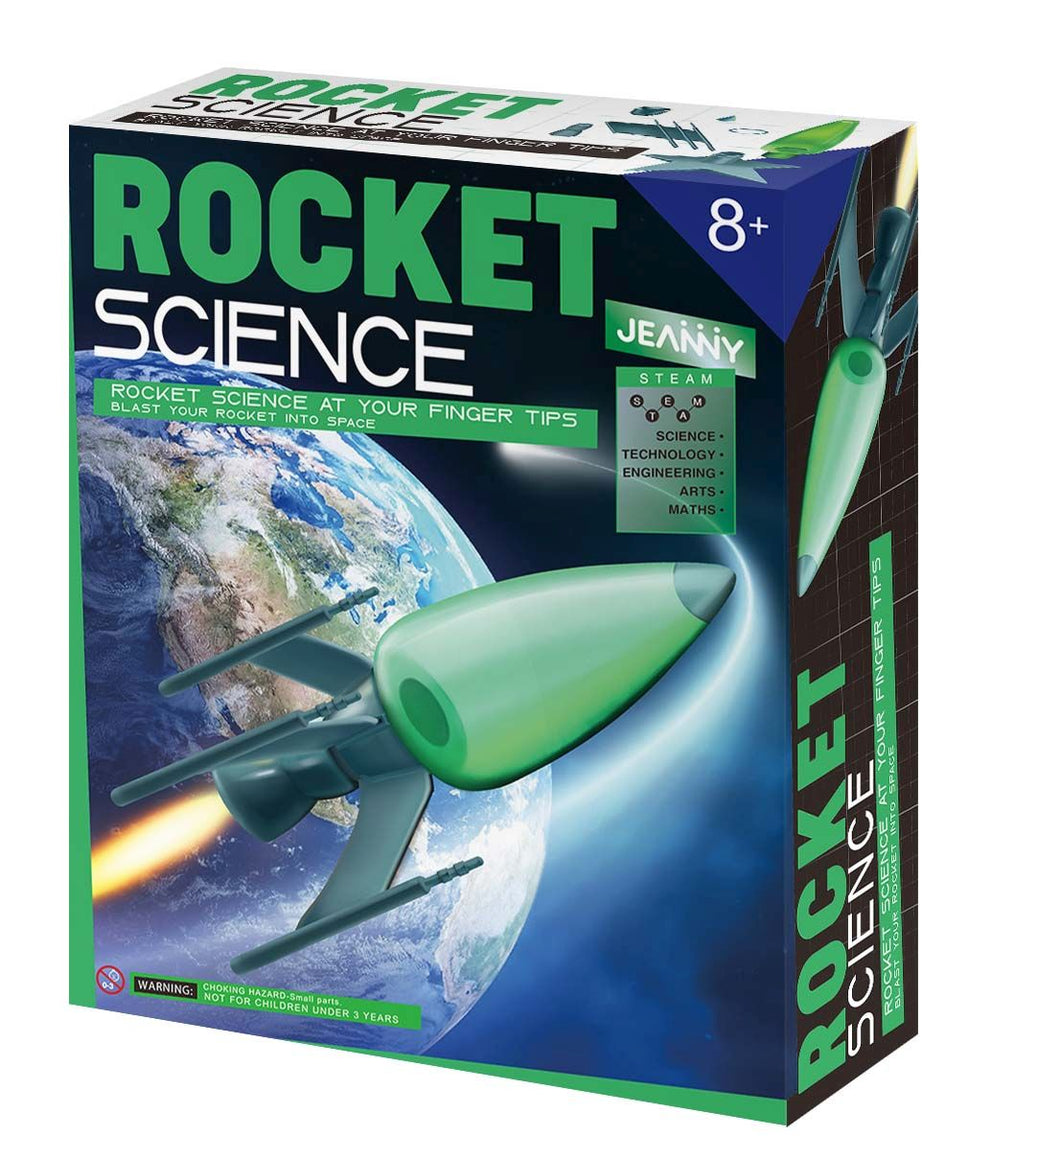 Jeanny rocket science box set